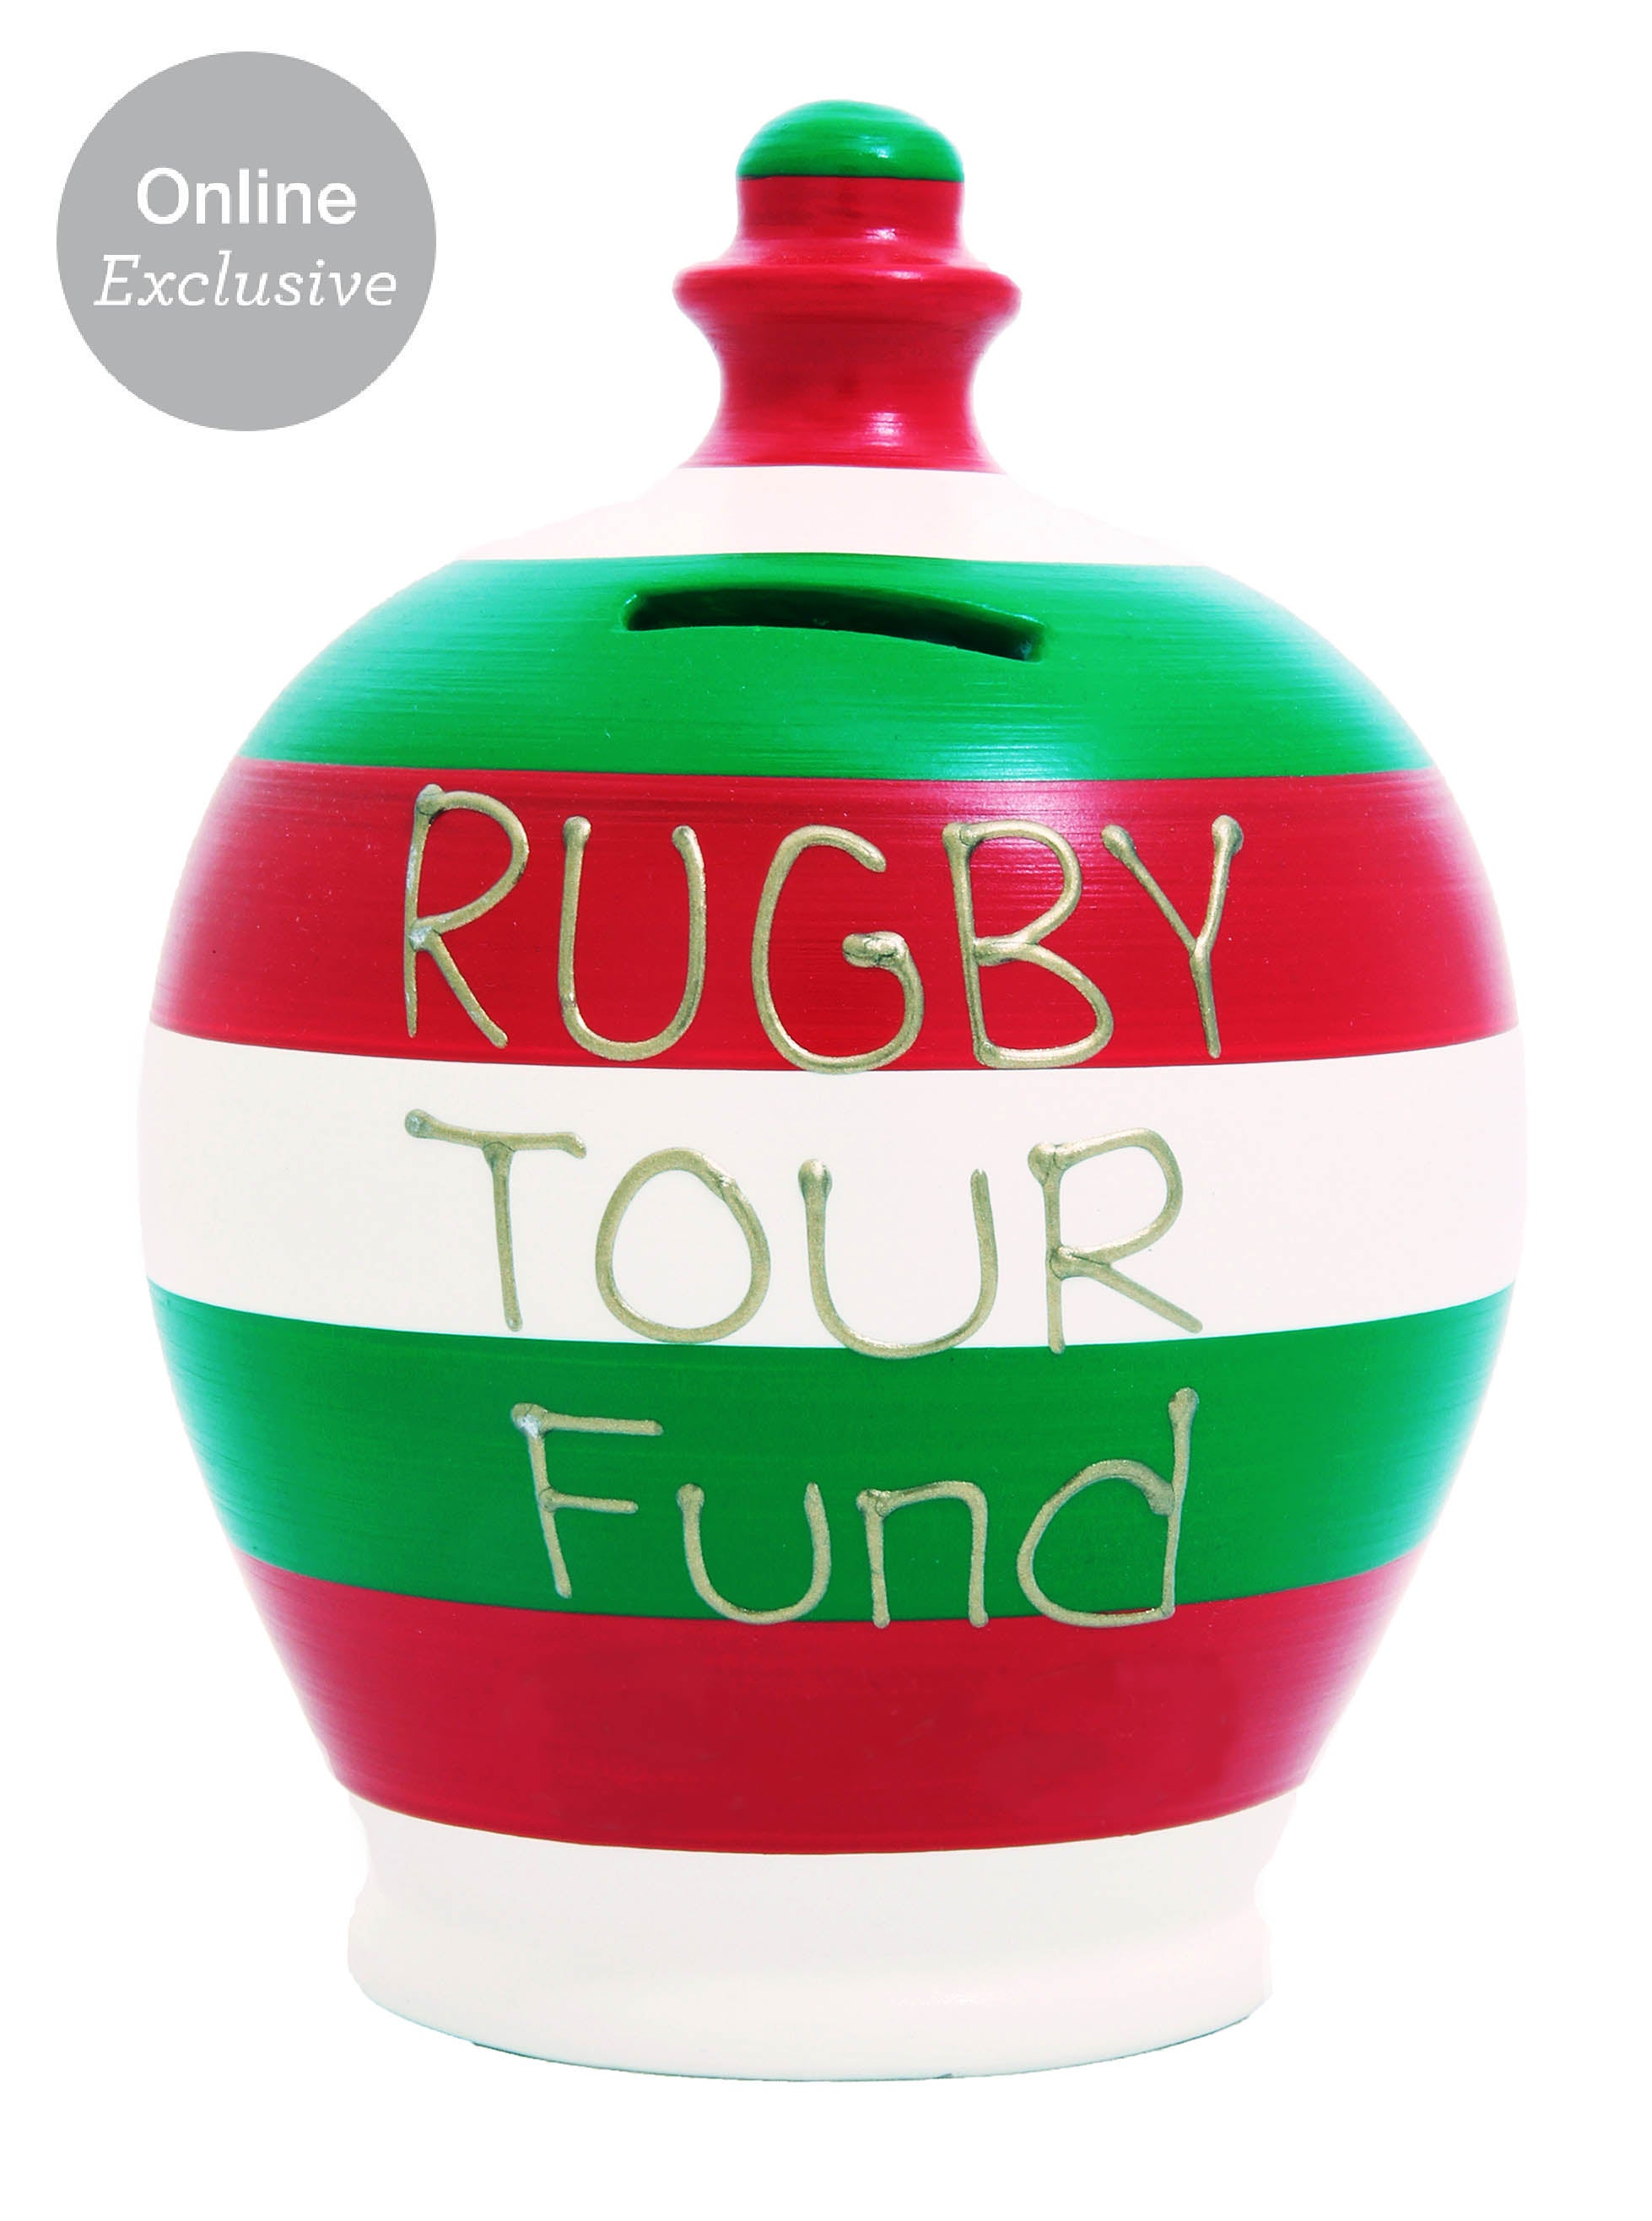 rugby tour fund stripe money pot white red and green s153